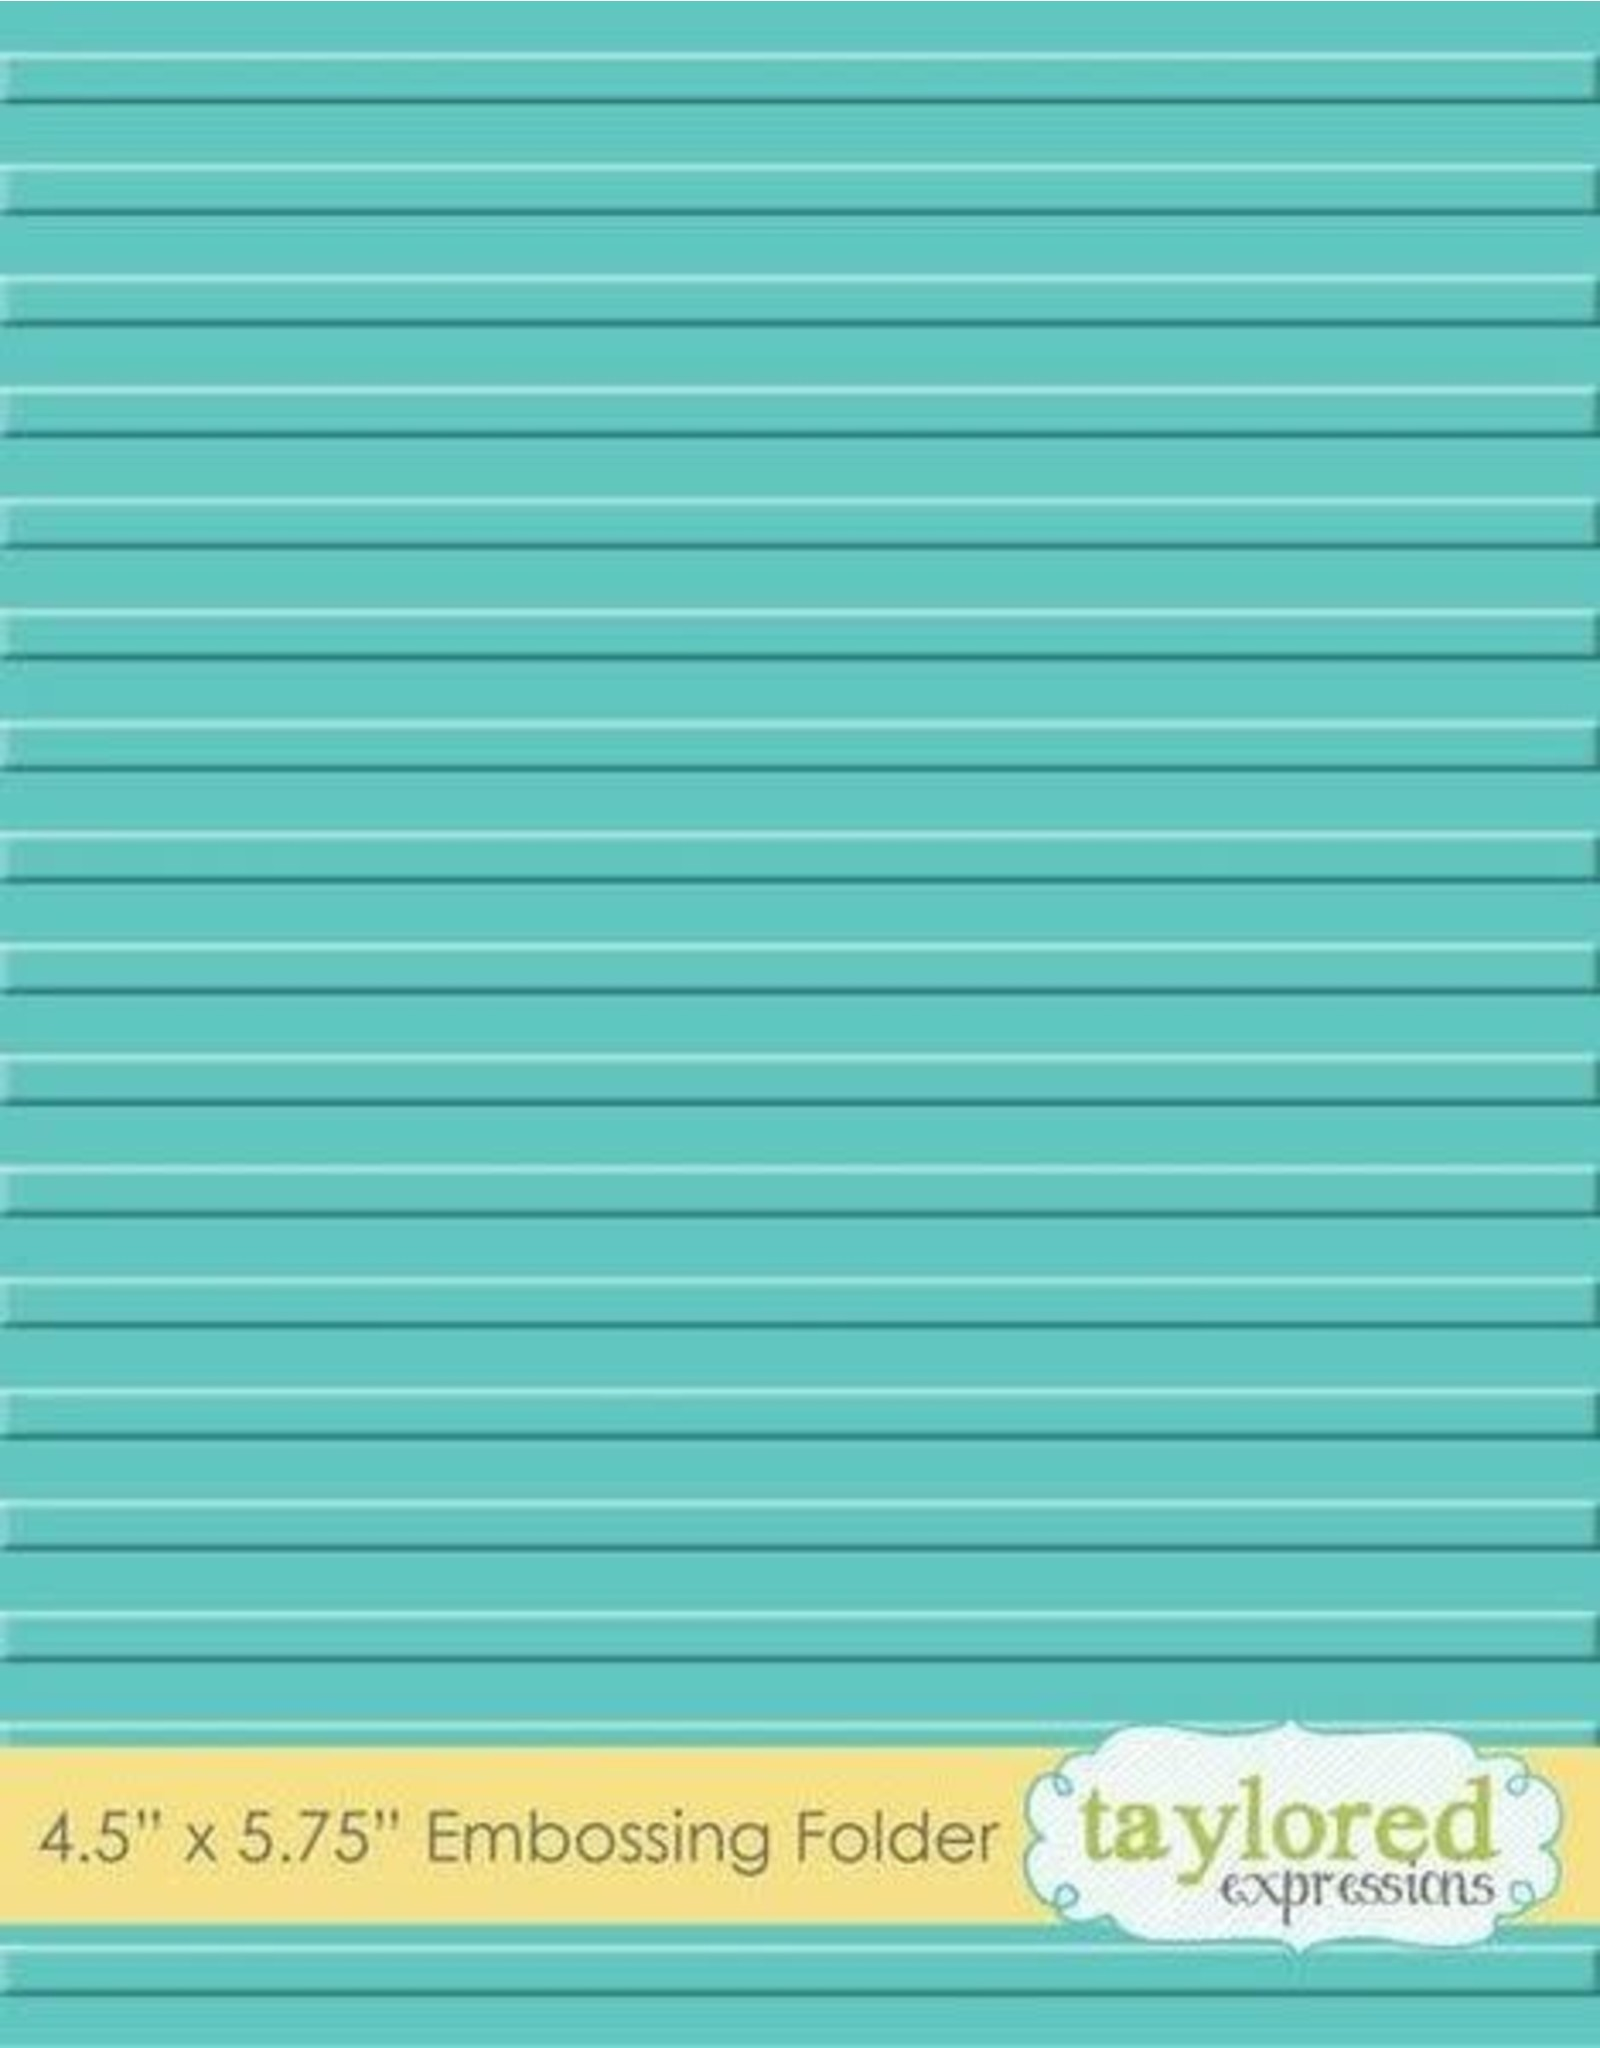 Taylored Expressions Corrugated - Embossing Folder